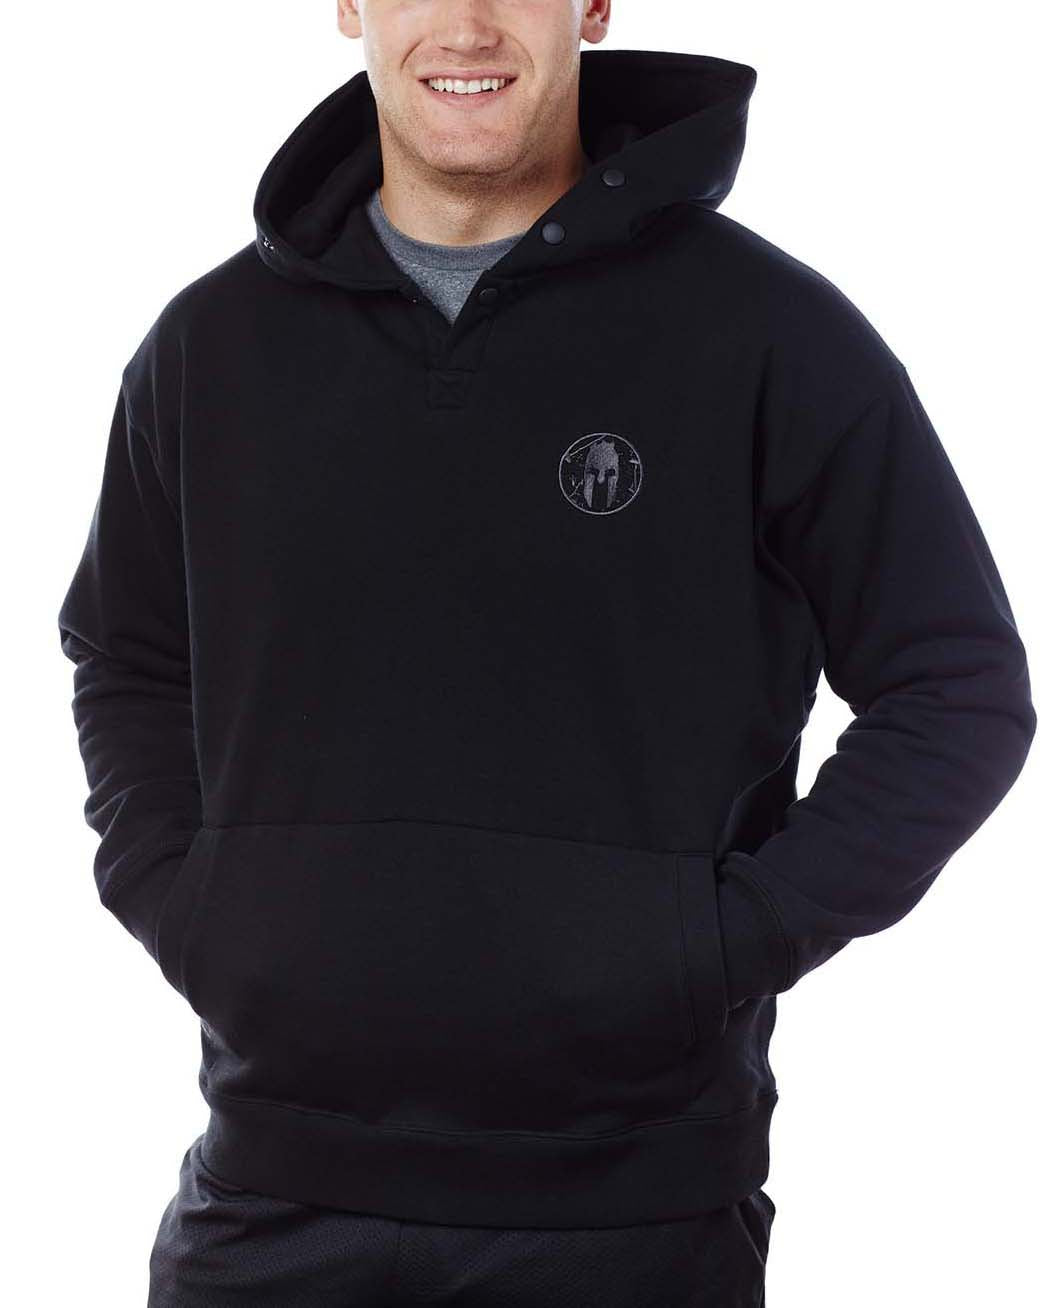 Spartan Race Shop SPARTAN Endurance Hoodie - Men's Black XS